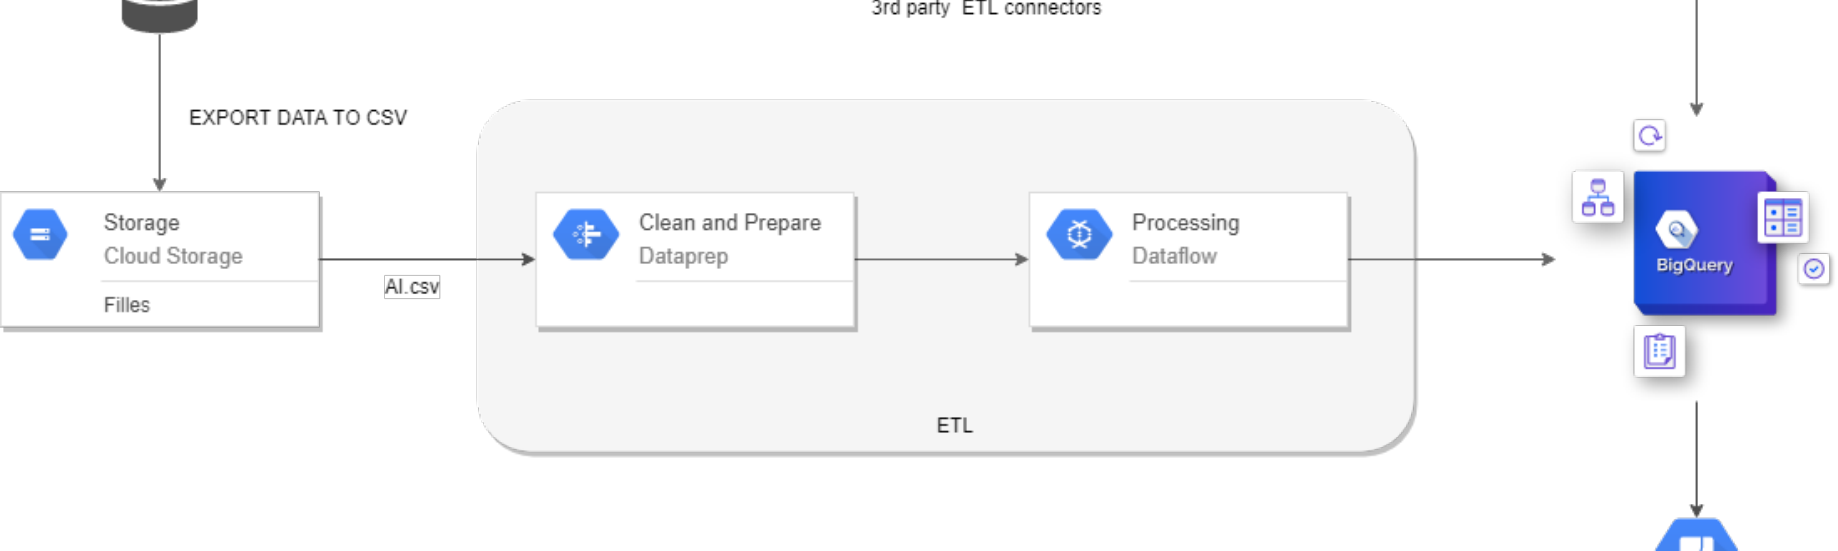 Oracle data (ETL) to Google BigQuery using Google Cloud Dataflow and